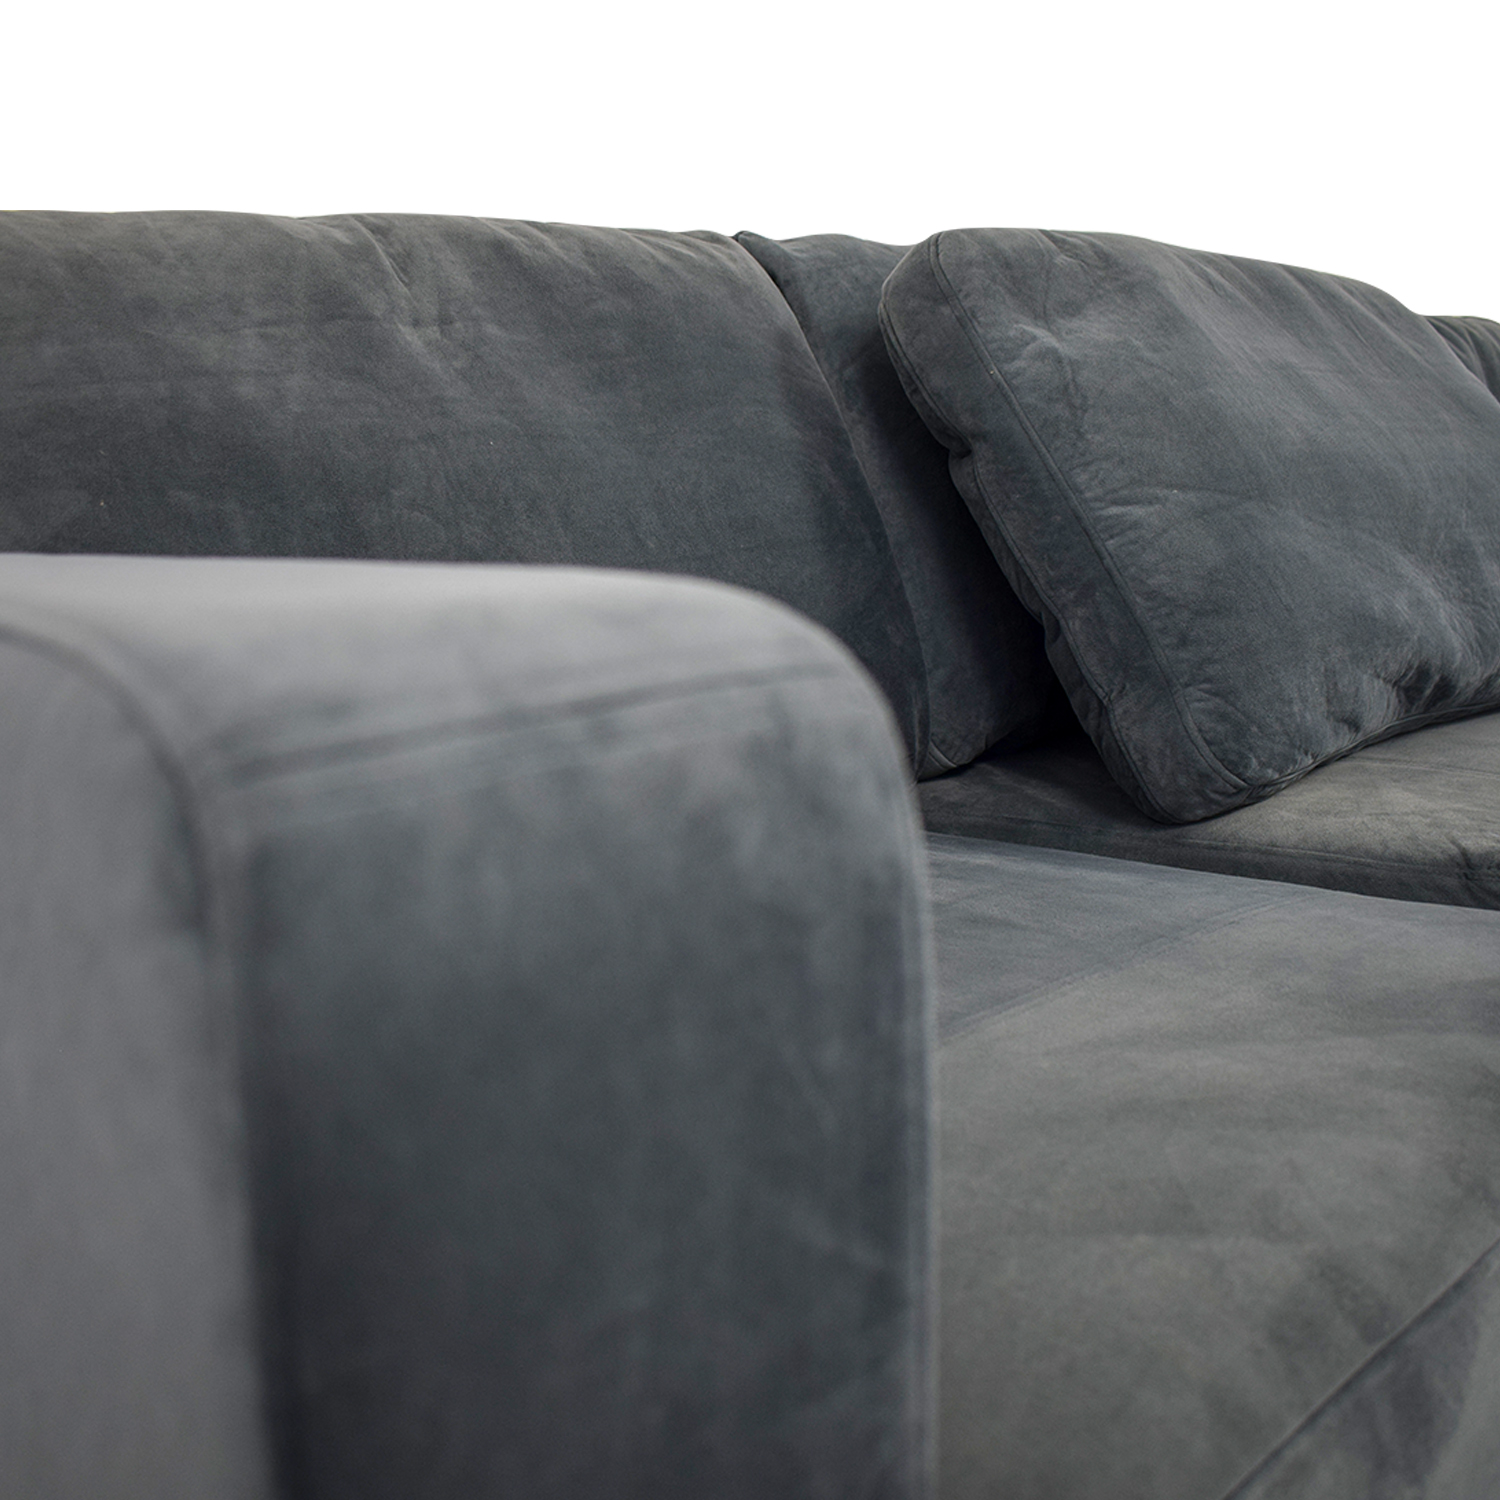 77% OFF - Lovesac Lovesac Grey Center Chaise Sectional / Sofas